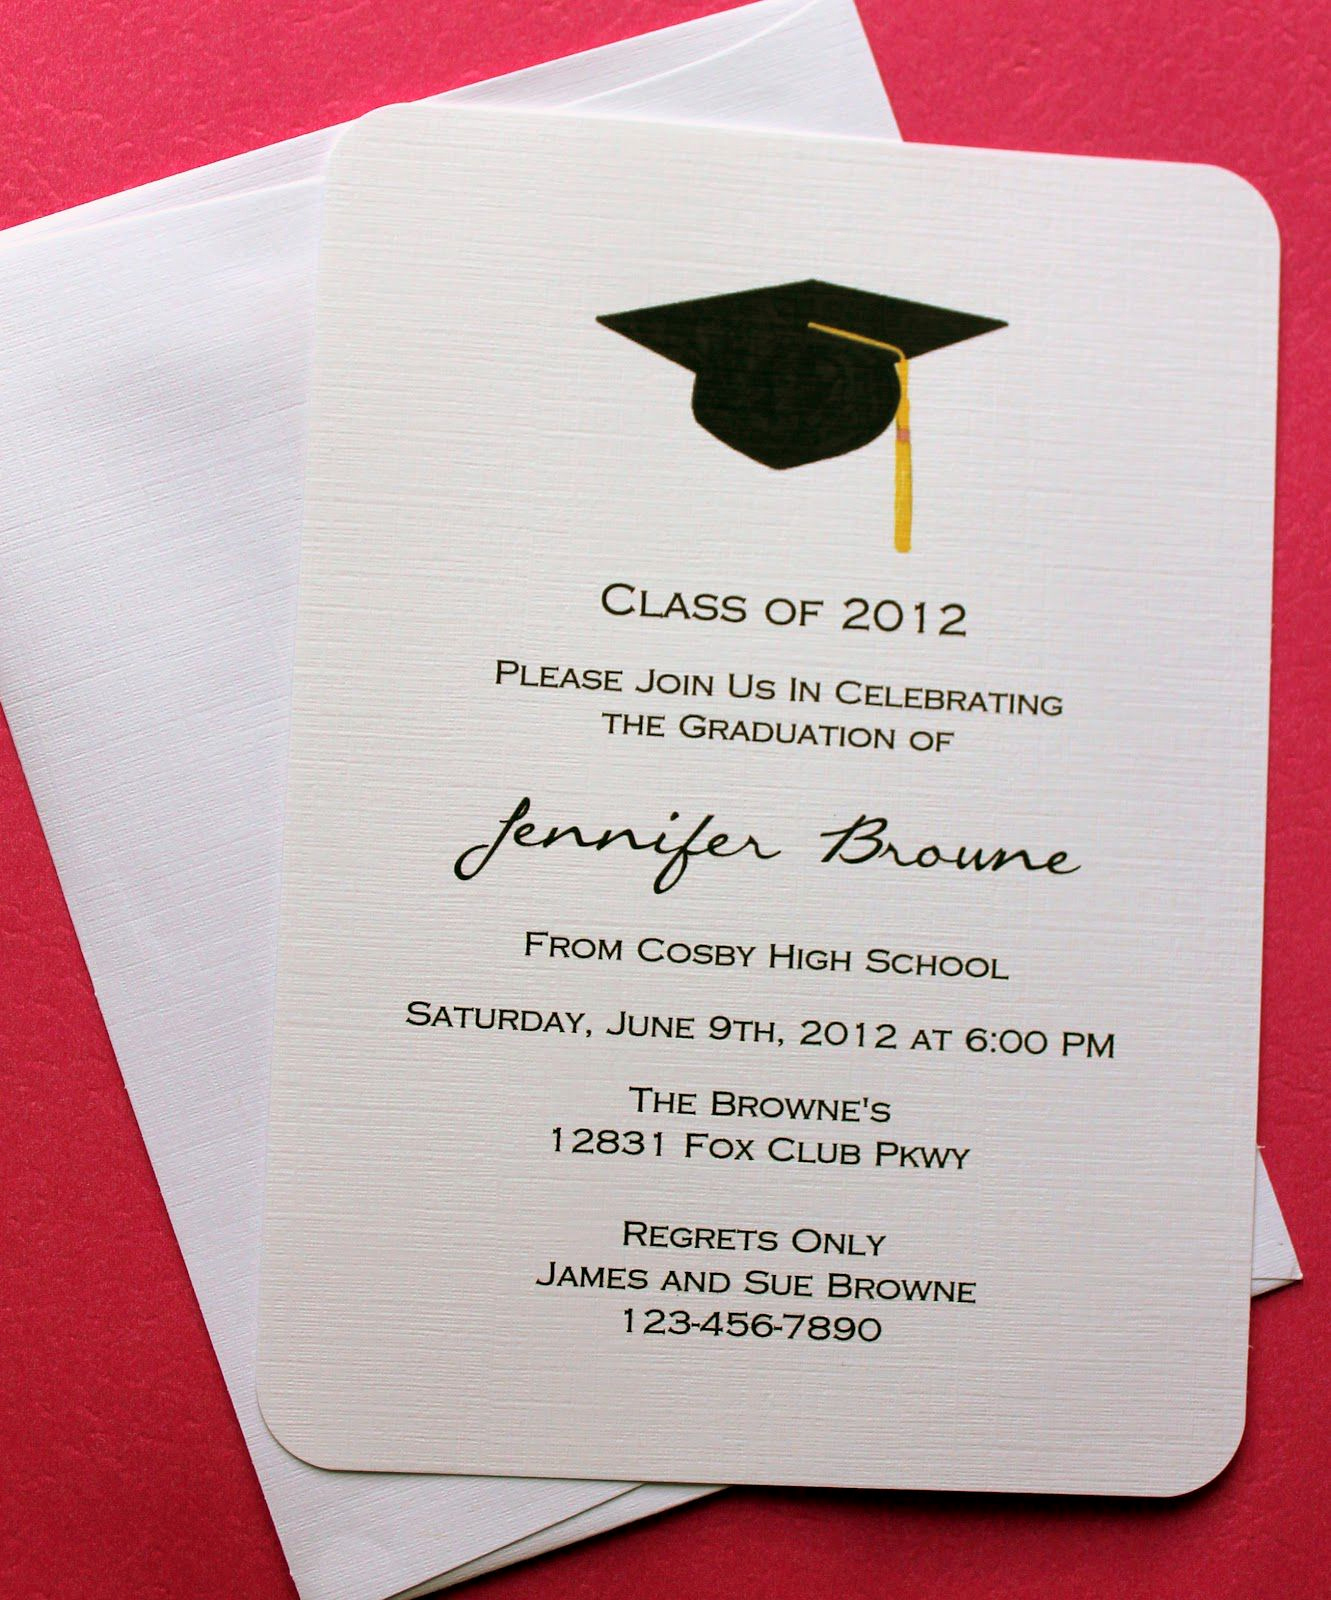 Graduation Ceremony Invitation Templates Free Lovely Graduation Invitation Template Graduation Invitation